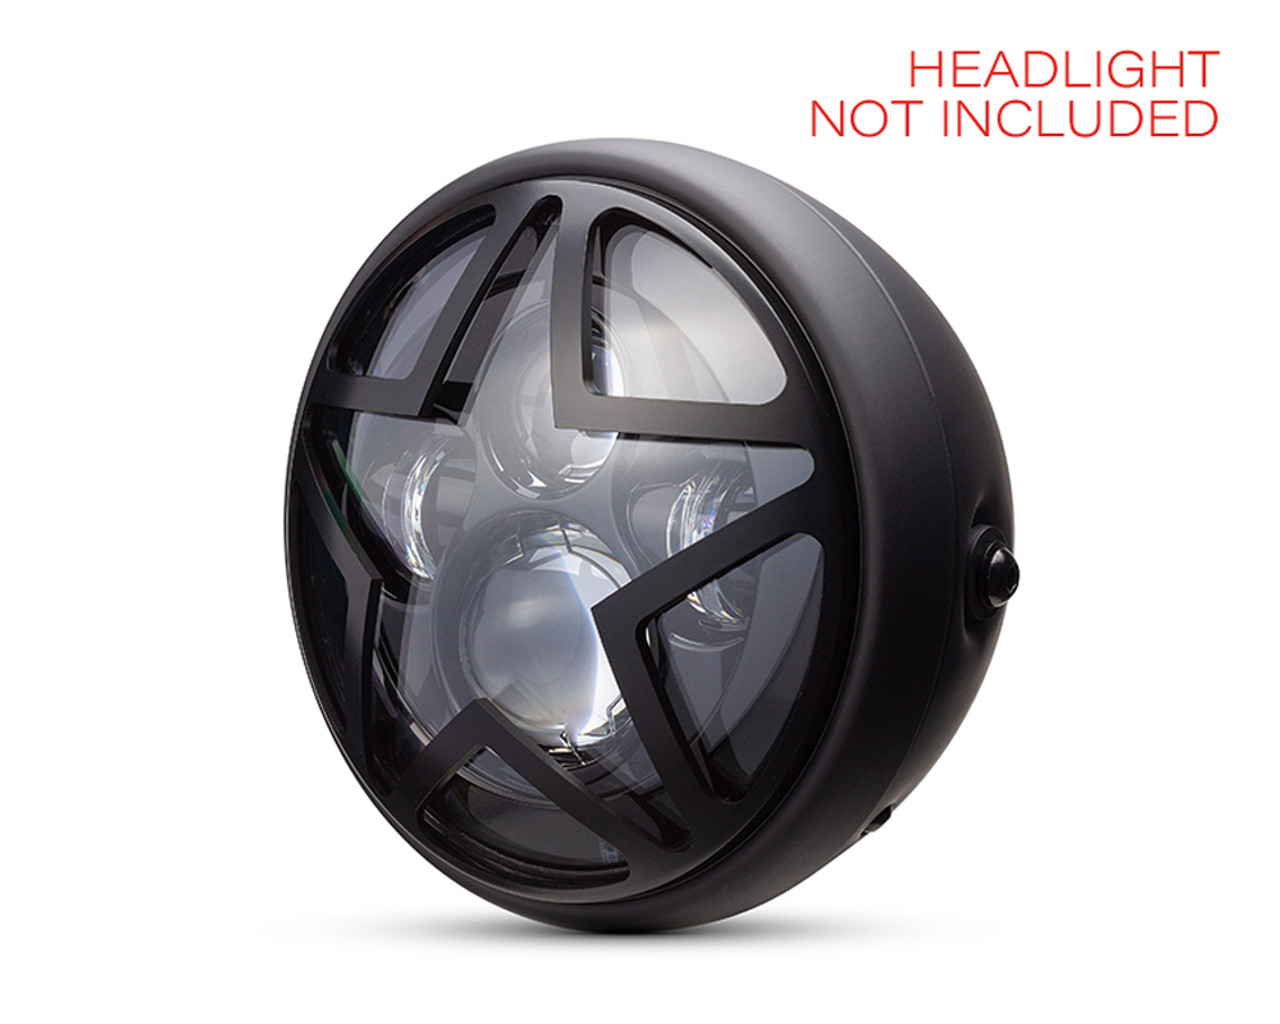 Motorcycle Metal Headlight Cover 7 INCH Matt Black Star Design Grill